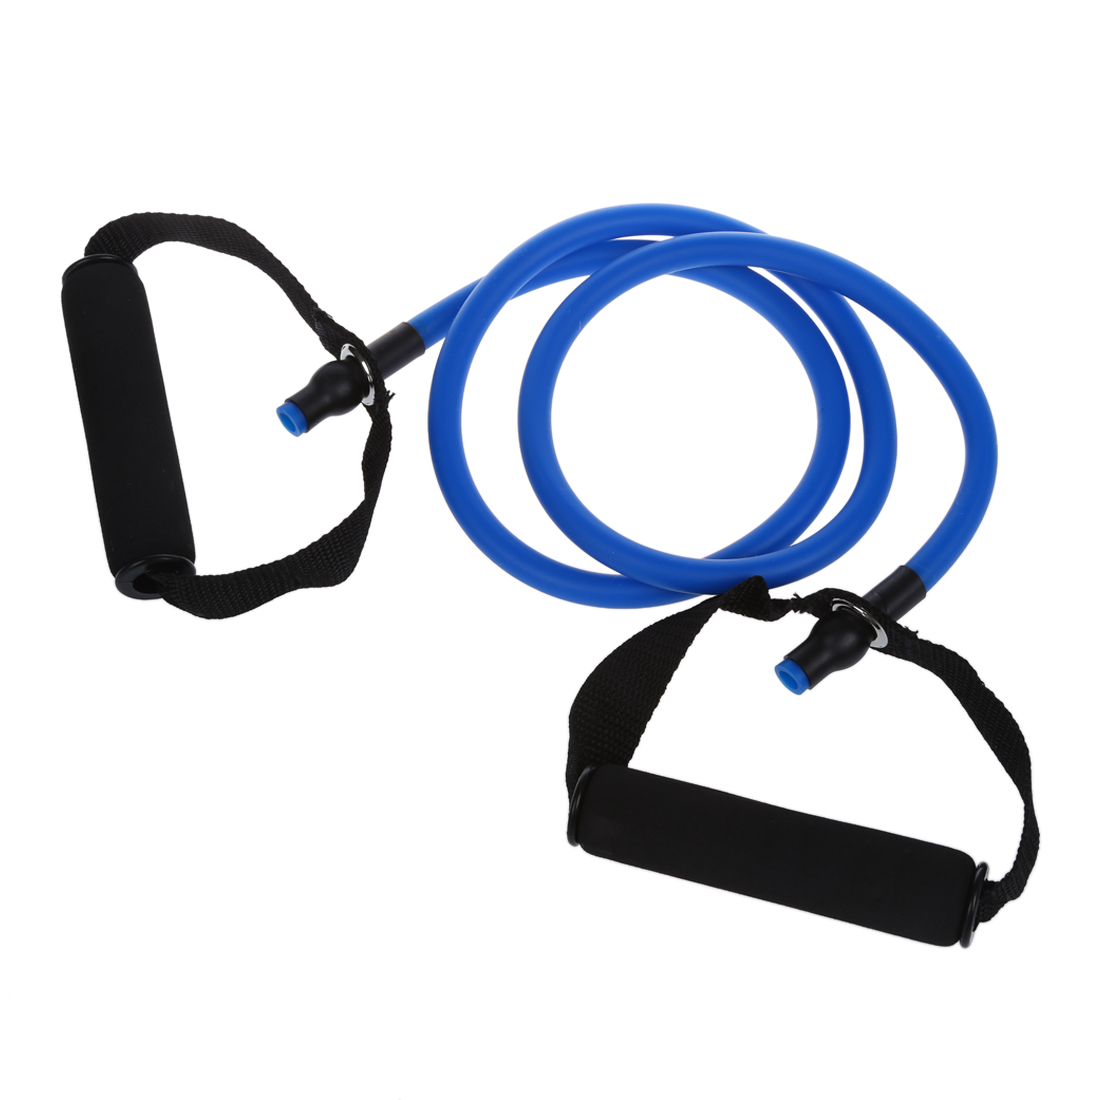 Blue Resistance Stretch Band Tube for Yoga Pilates Fitness Exercise ABS Workout